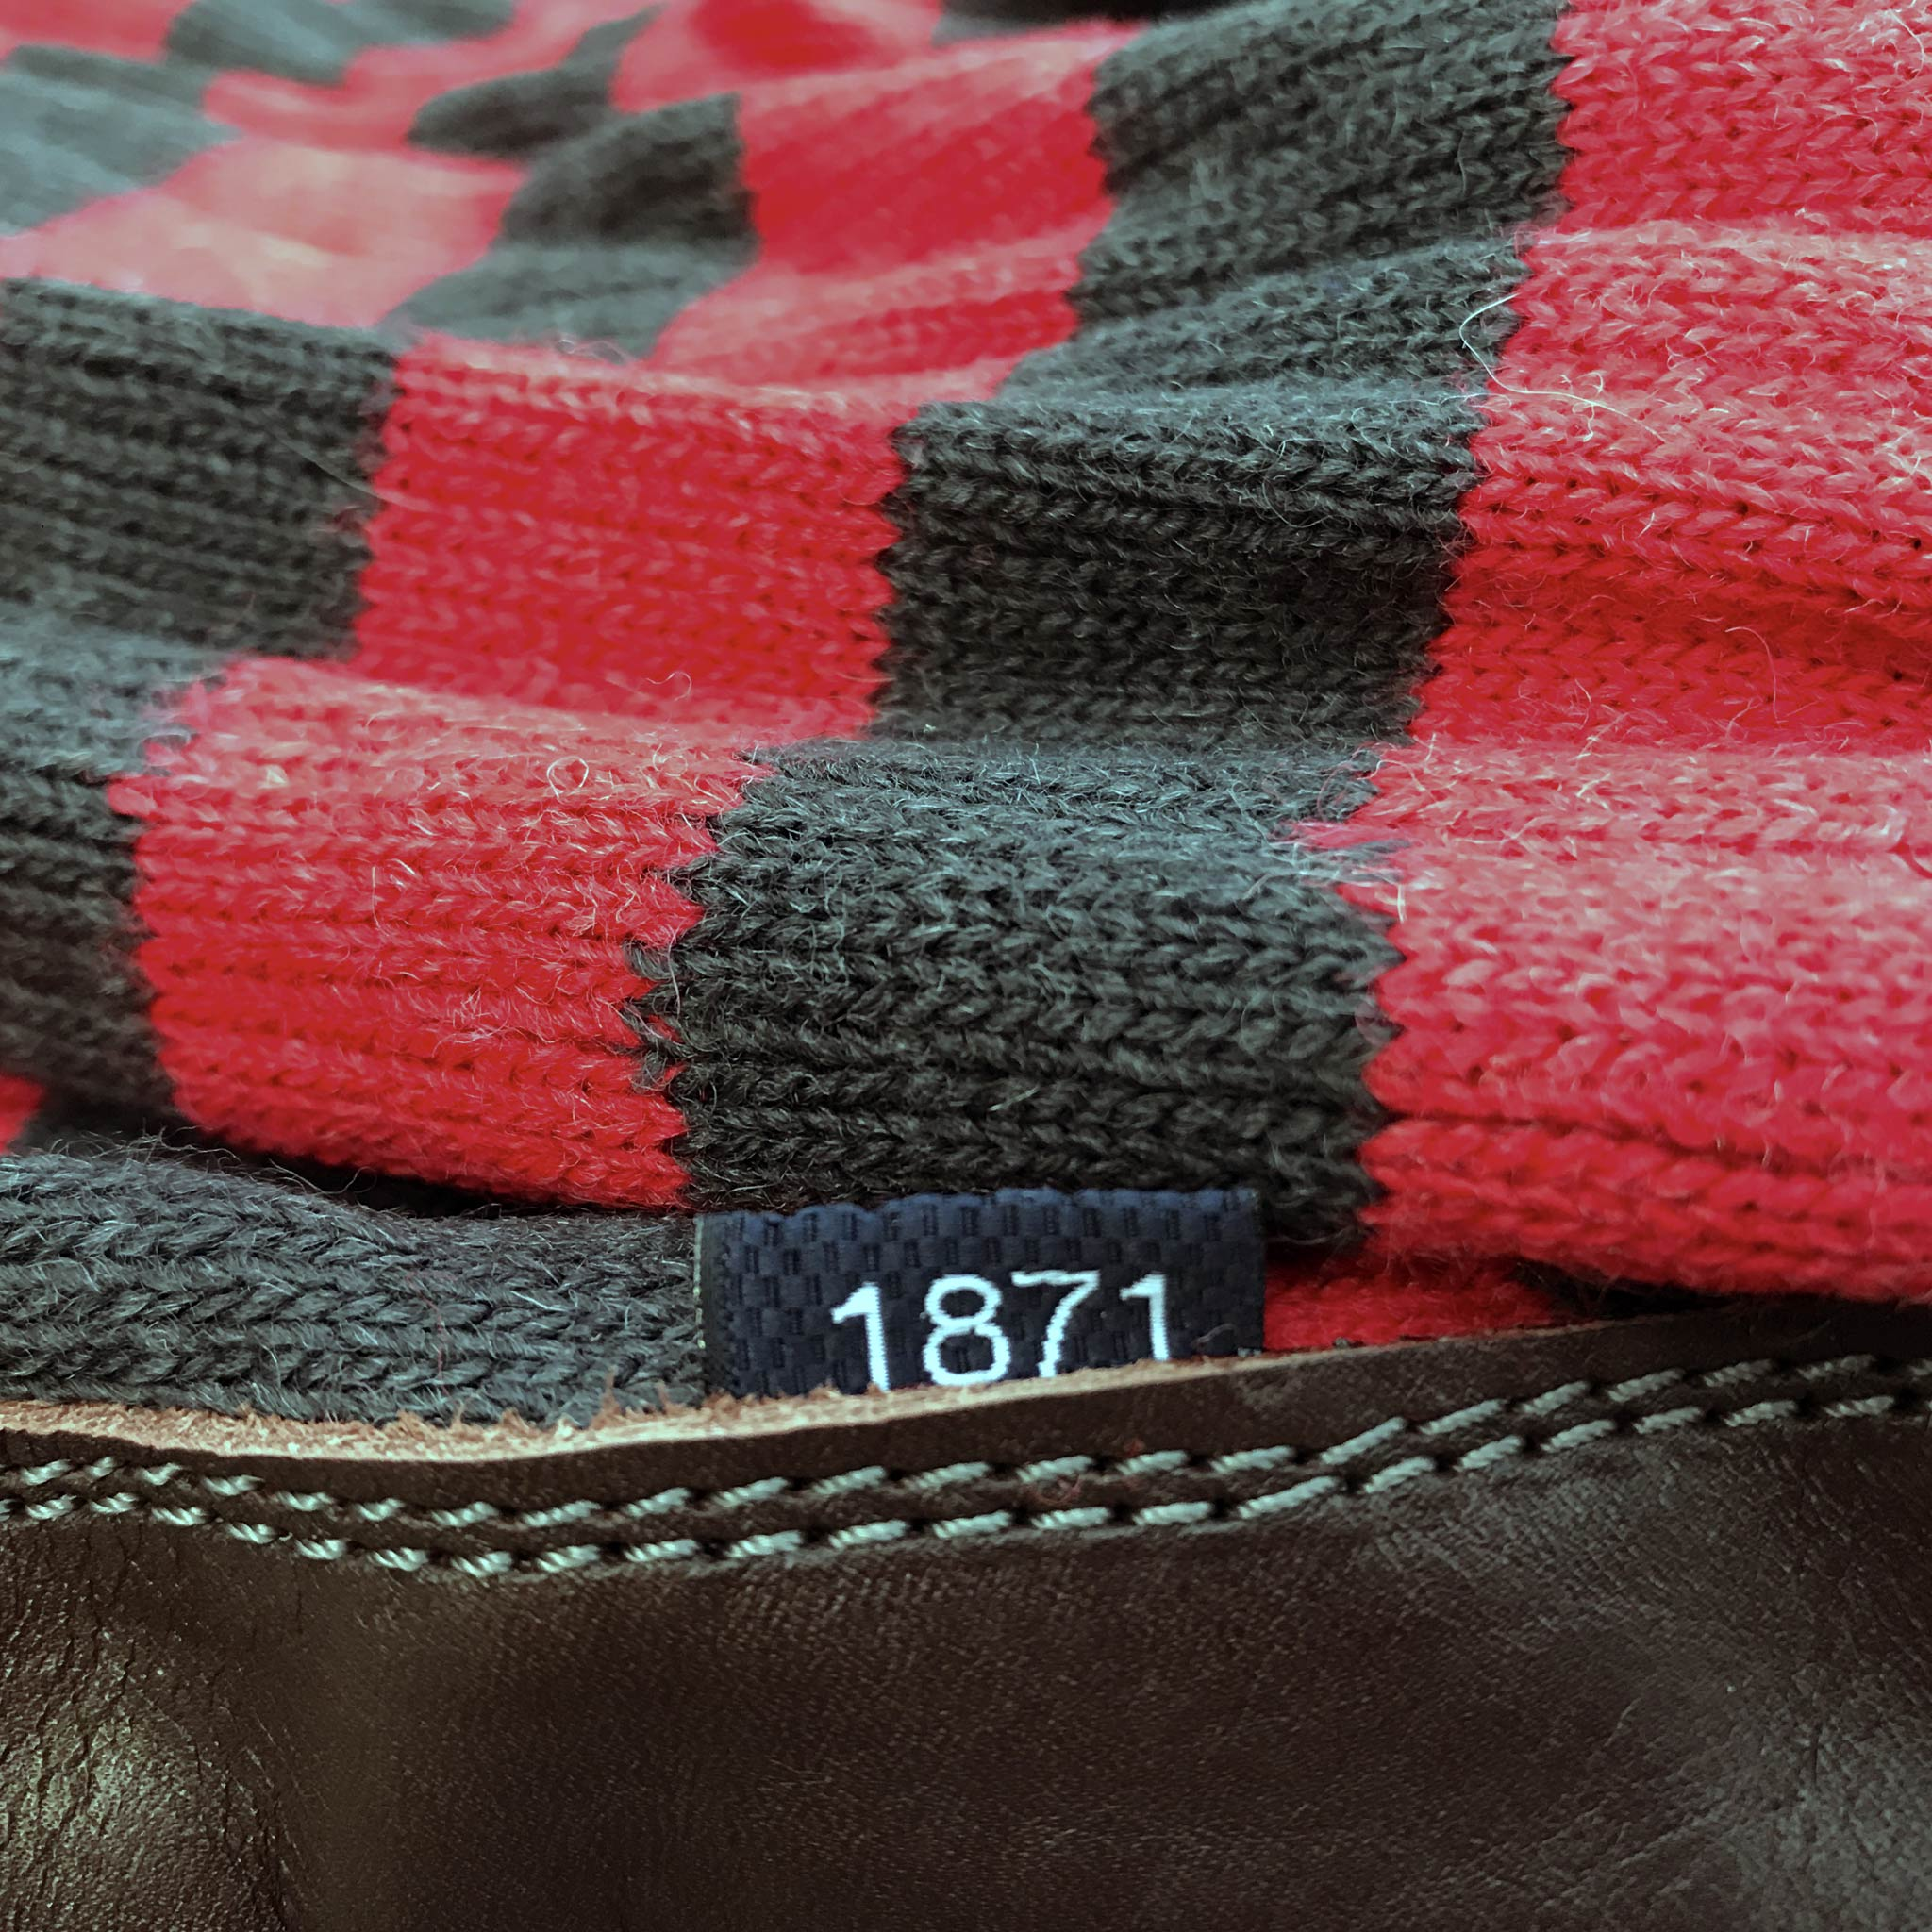 Slipper Sock black and red stripe - closeup